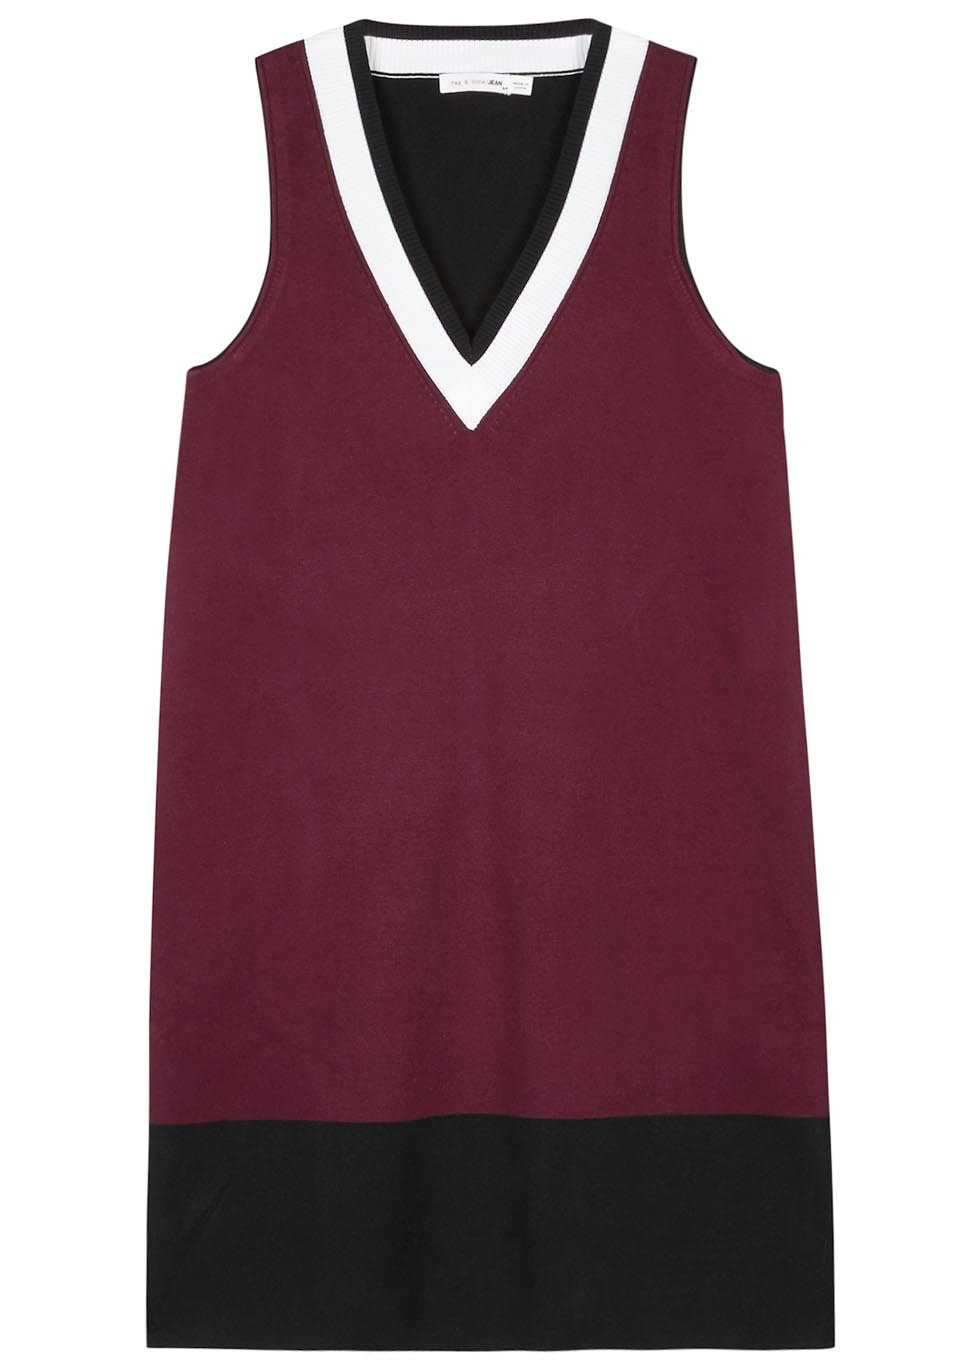 Ainsley Ribbed Cotton Blend Dress - style: shift; length: mid thigh; neckline: v-neck; sleeve style: sleeveless; predominant colour: burgundy; secondary colour: black; occasions: evening; fit: body skimming; fibres: cotton - mix; sleeve length: sleeveless; texture group: cotton feel fabrics; pattern type: fabric; pattern: colourblock; multicoloured: multicoloured; season: s/s 2016; wardrobe: event